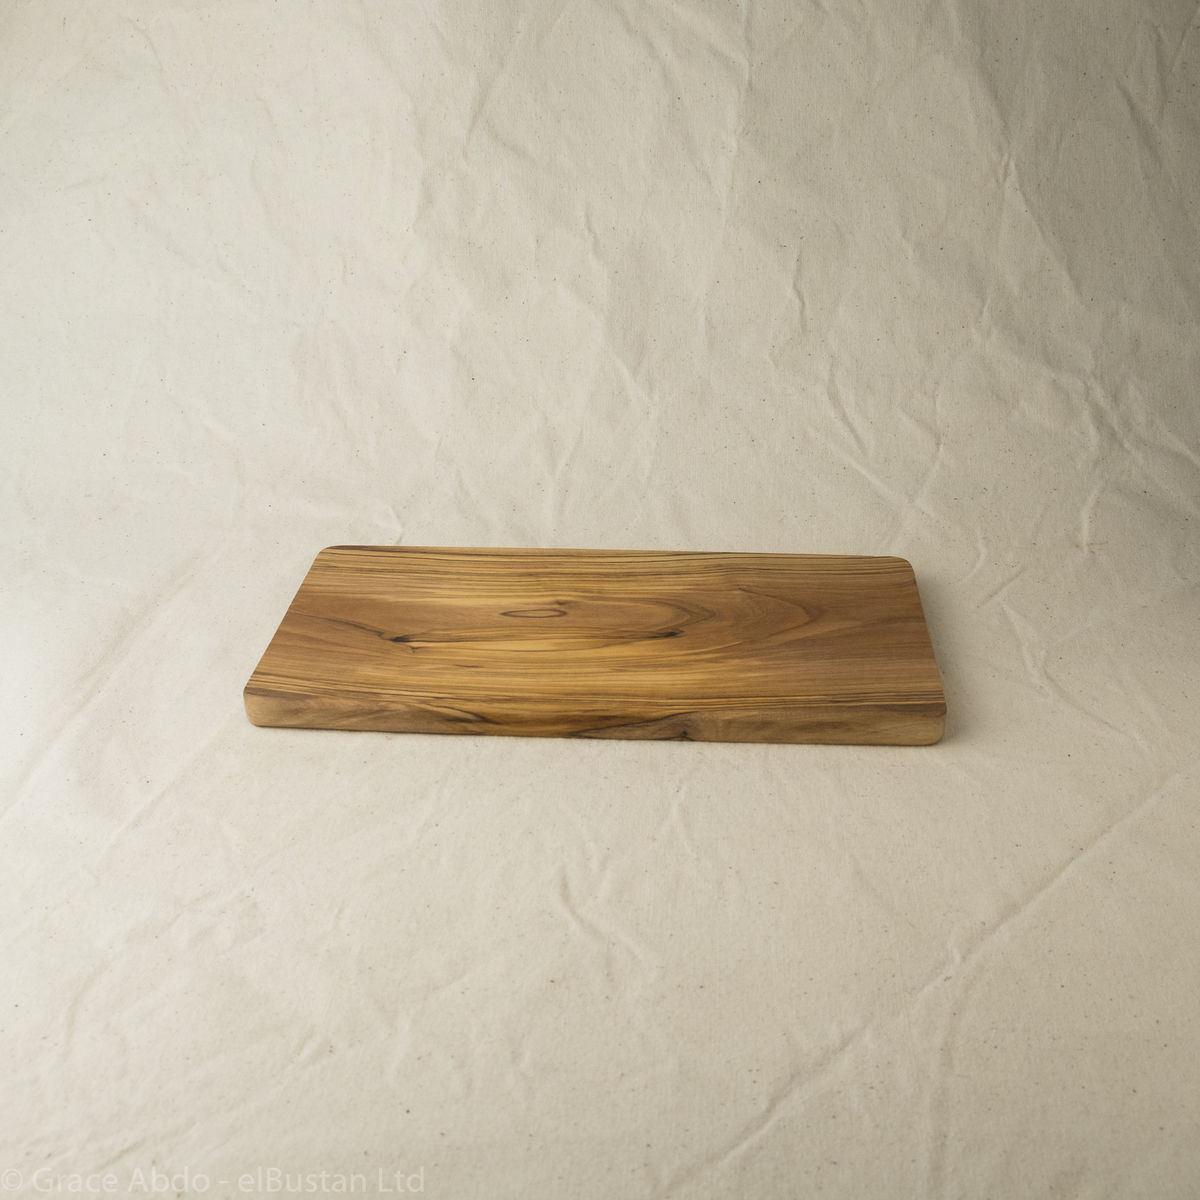 Olive wood cheese board / serving board - Handcrafted in Palestine - product images  of